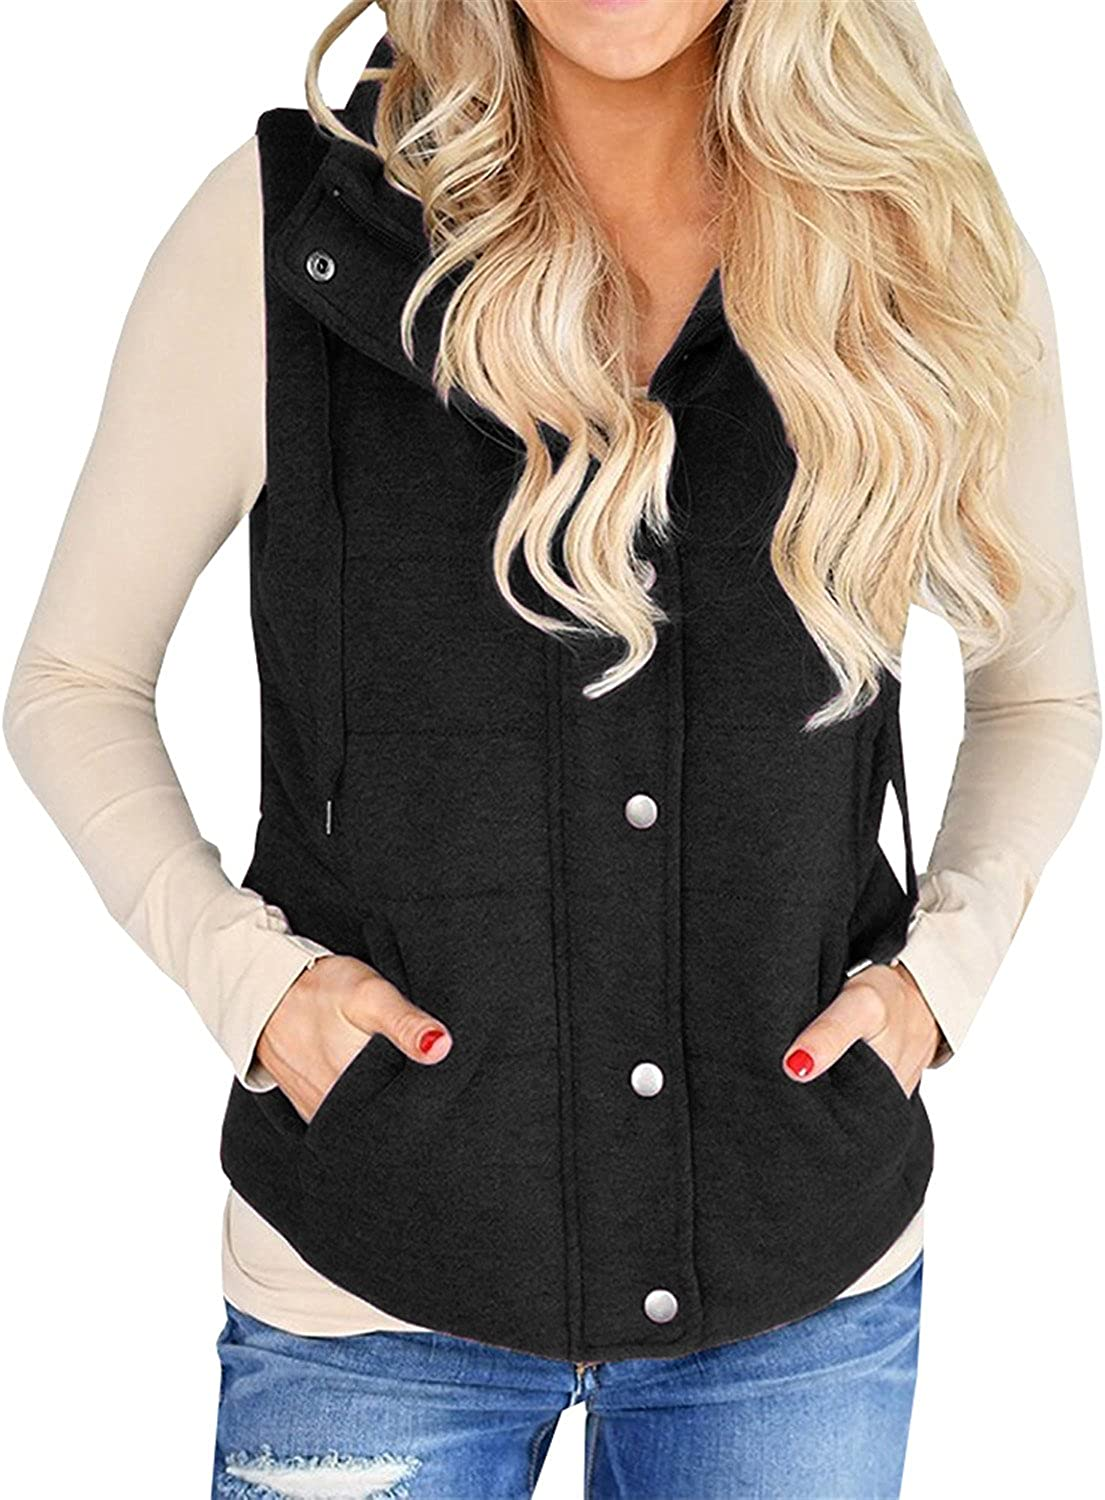 Chellysun Women Snap Stand Quilted Vest Coat Padded Puffer Outerwear Jacket with Zipper